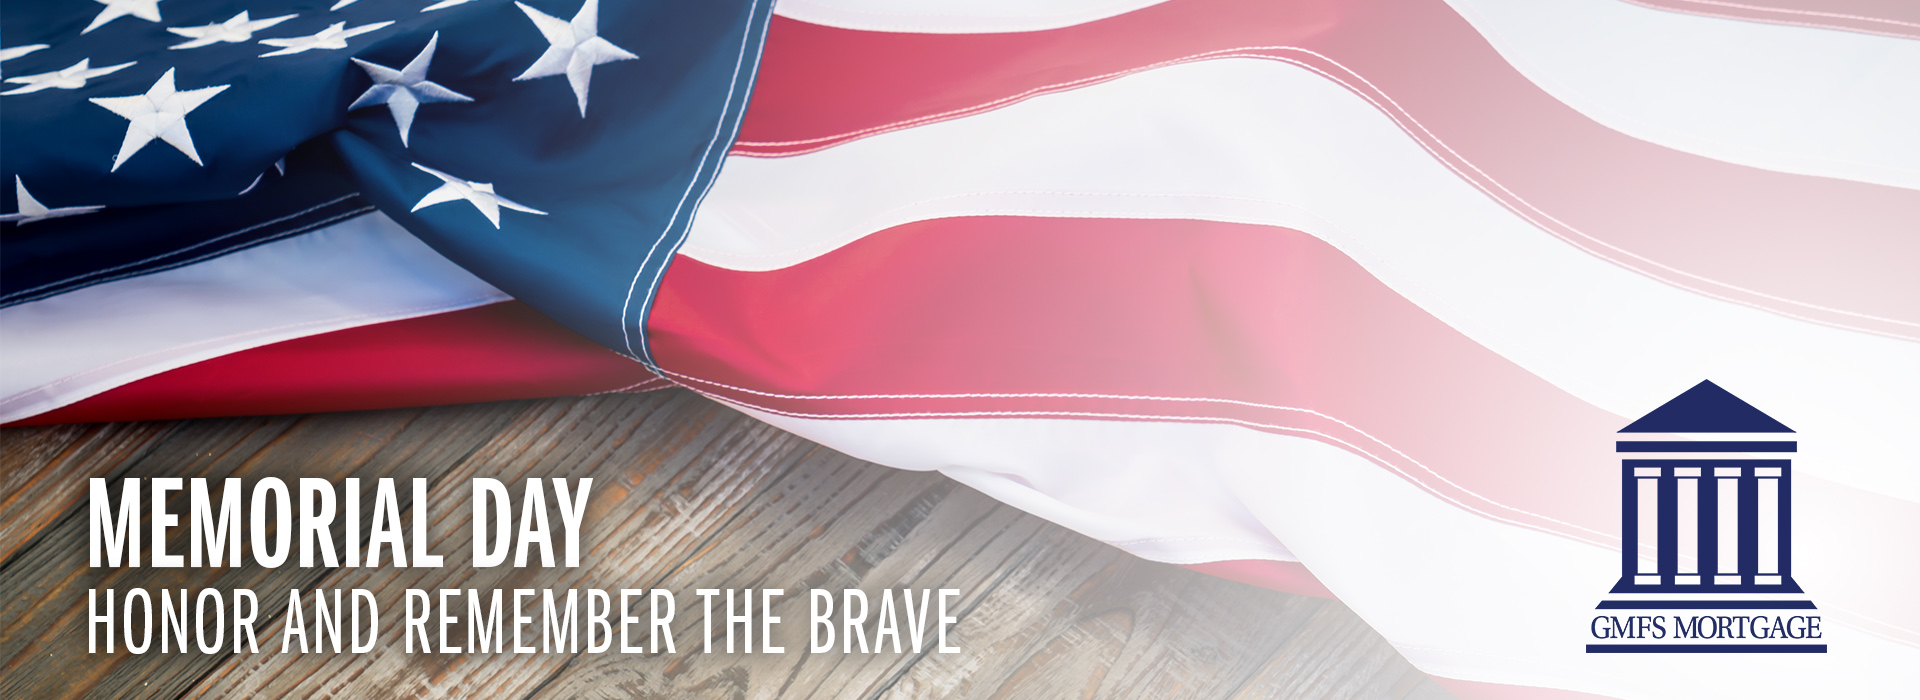 On Memorial Day - GMFS Mortgage honors and remembers the brave U.S. servicemen and service women that have made the ultimate sacrifice for our great nation